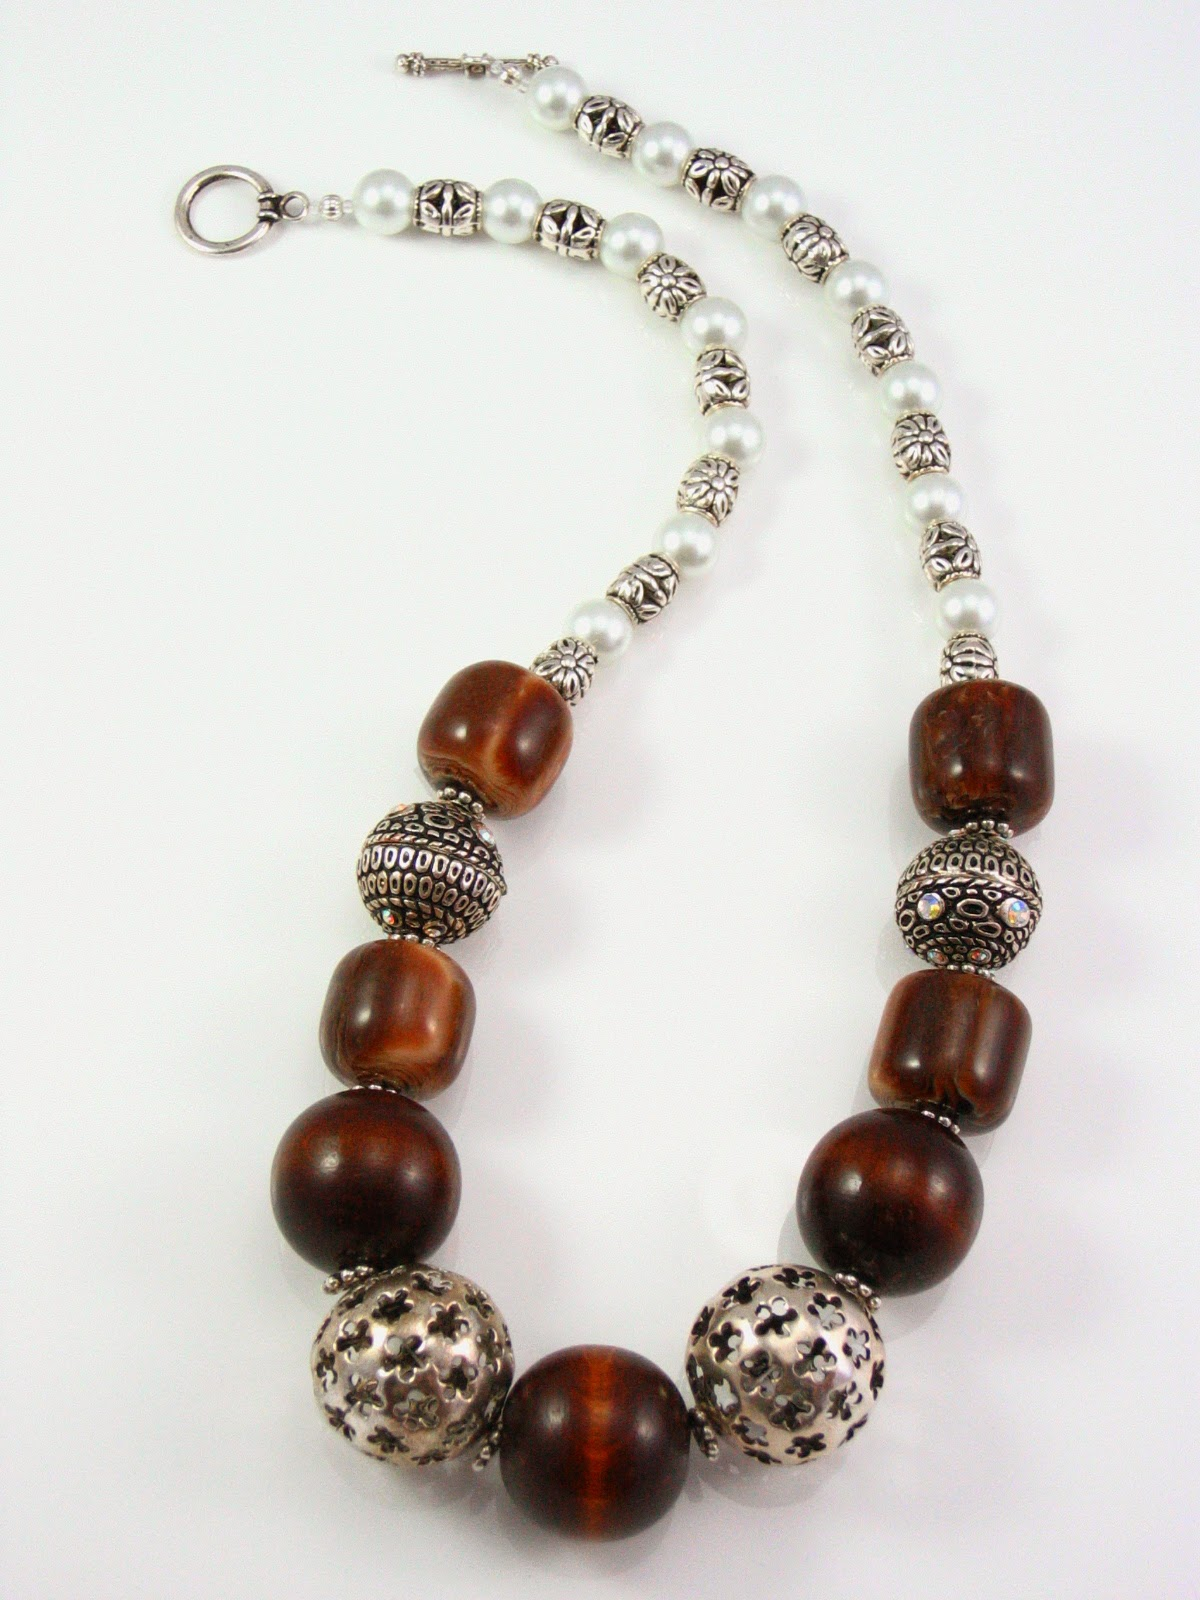 blog.oanasinga.com-oana-singa-necklace-design-wood-and-metal-bead-necklace